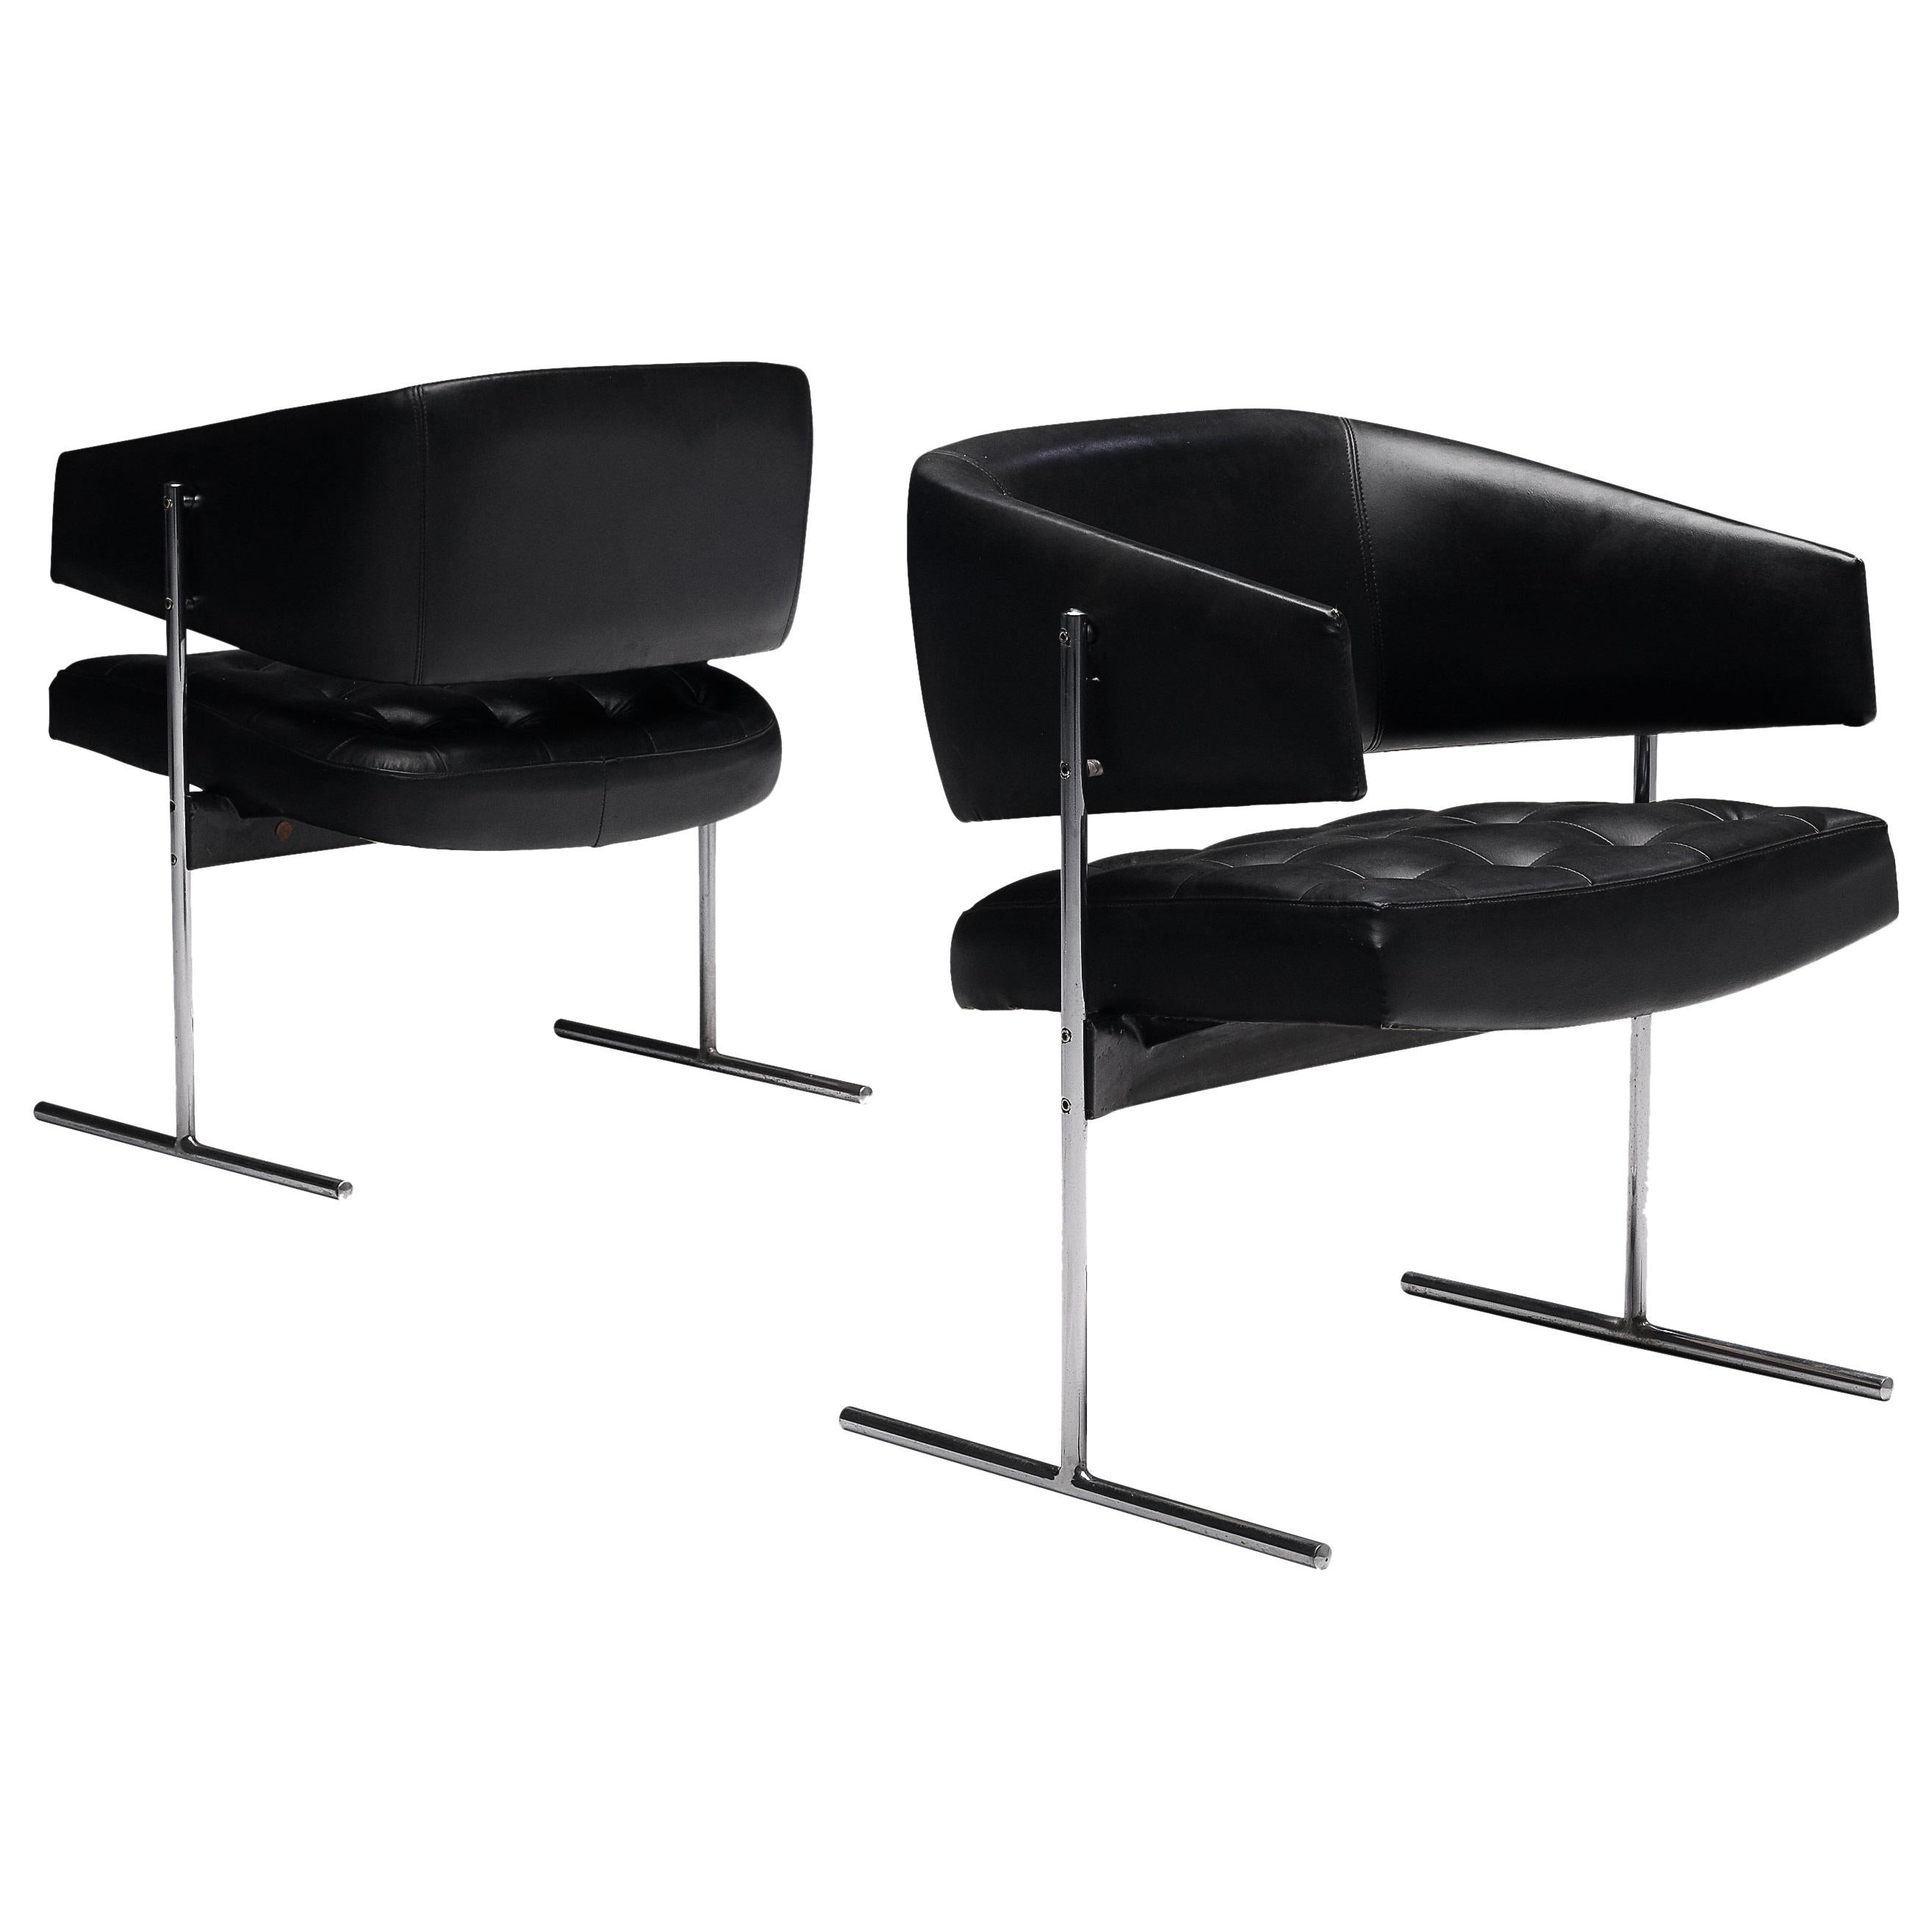 Jorge Zalszupin Pair of 'Senior' Chairs in Black Leatherette